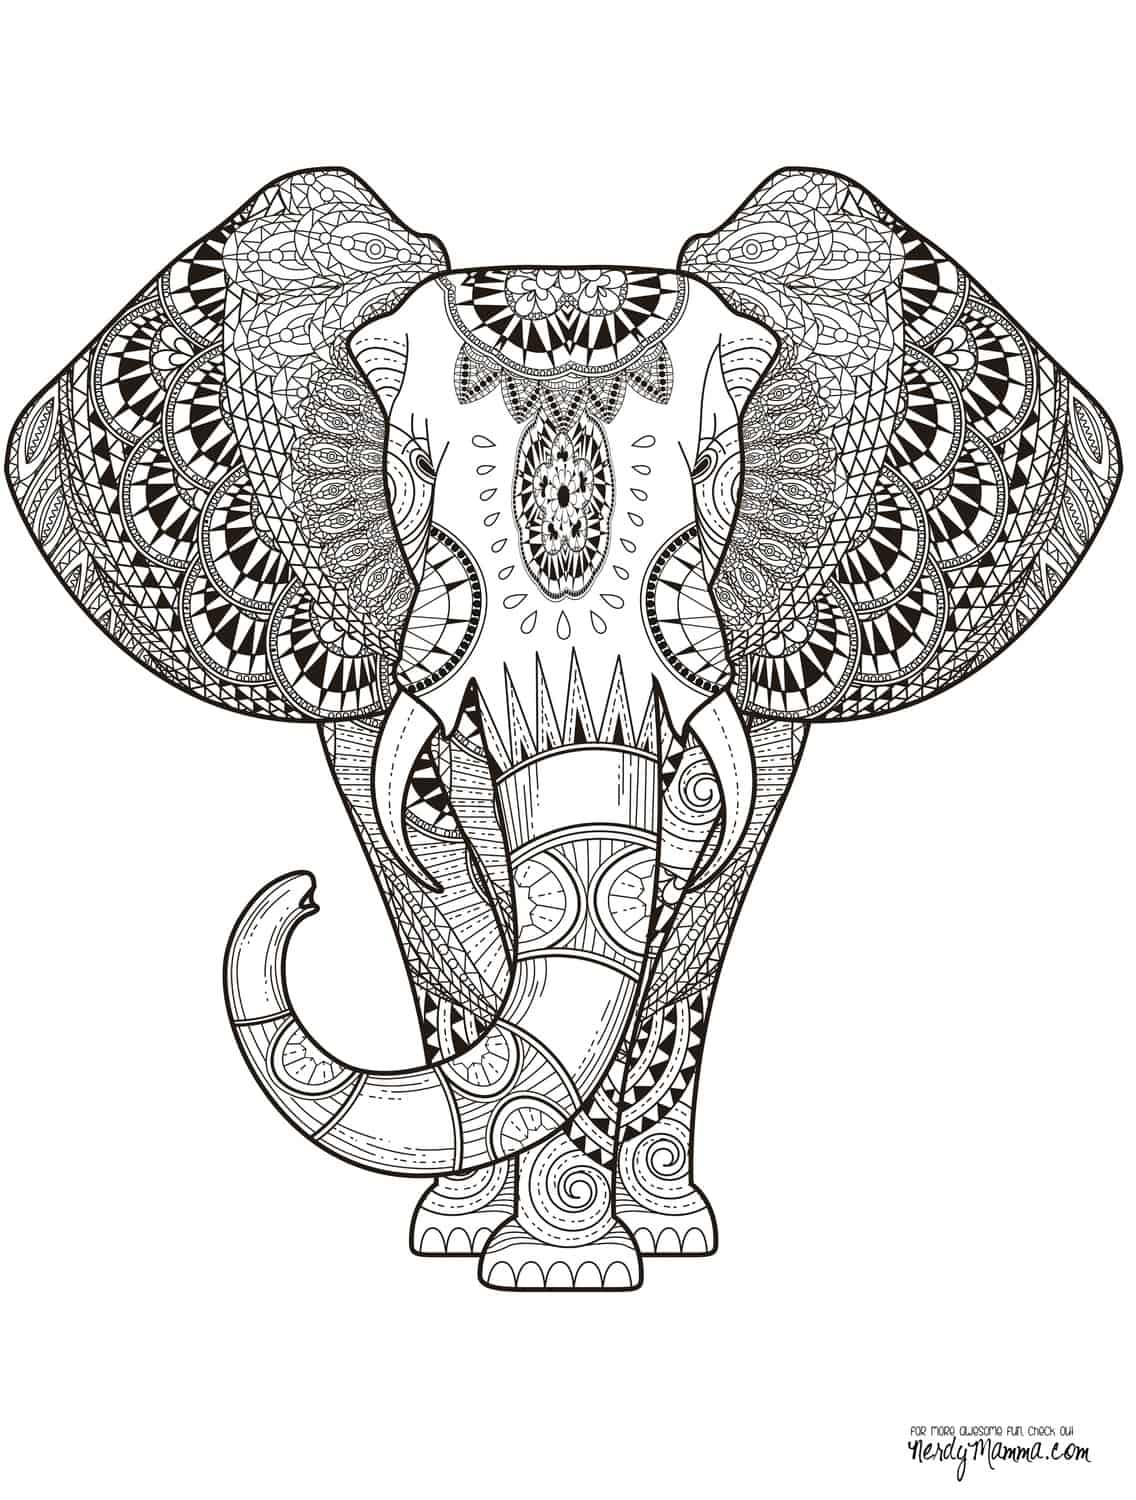 11 free printable adult coloring pages for Coloring page elephant